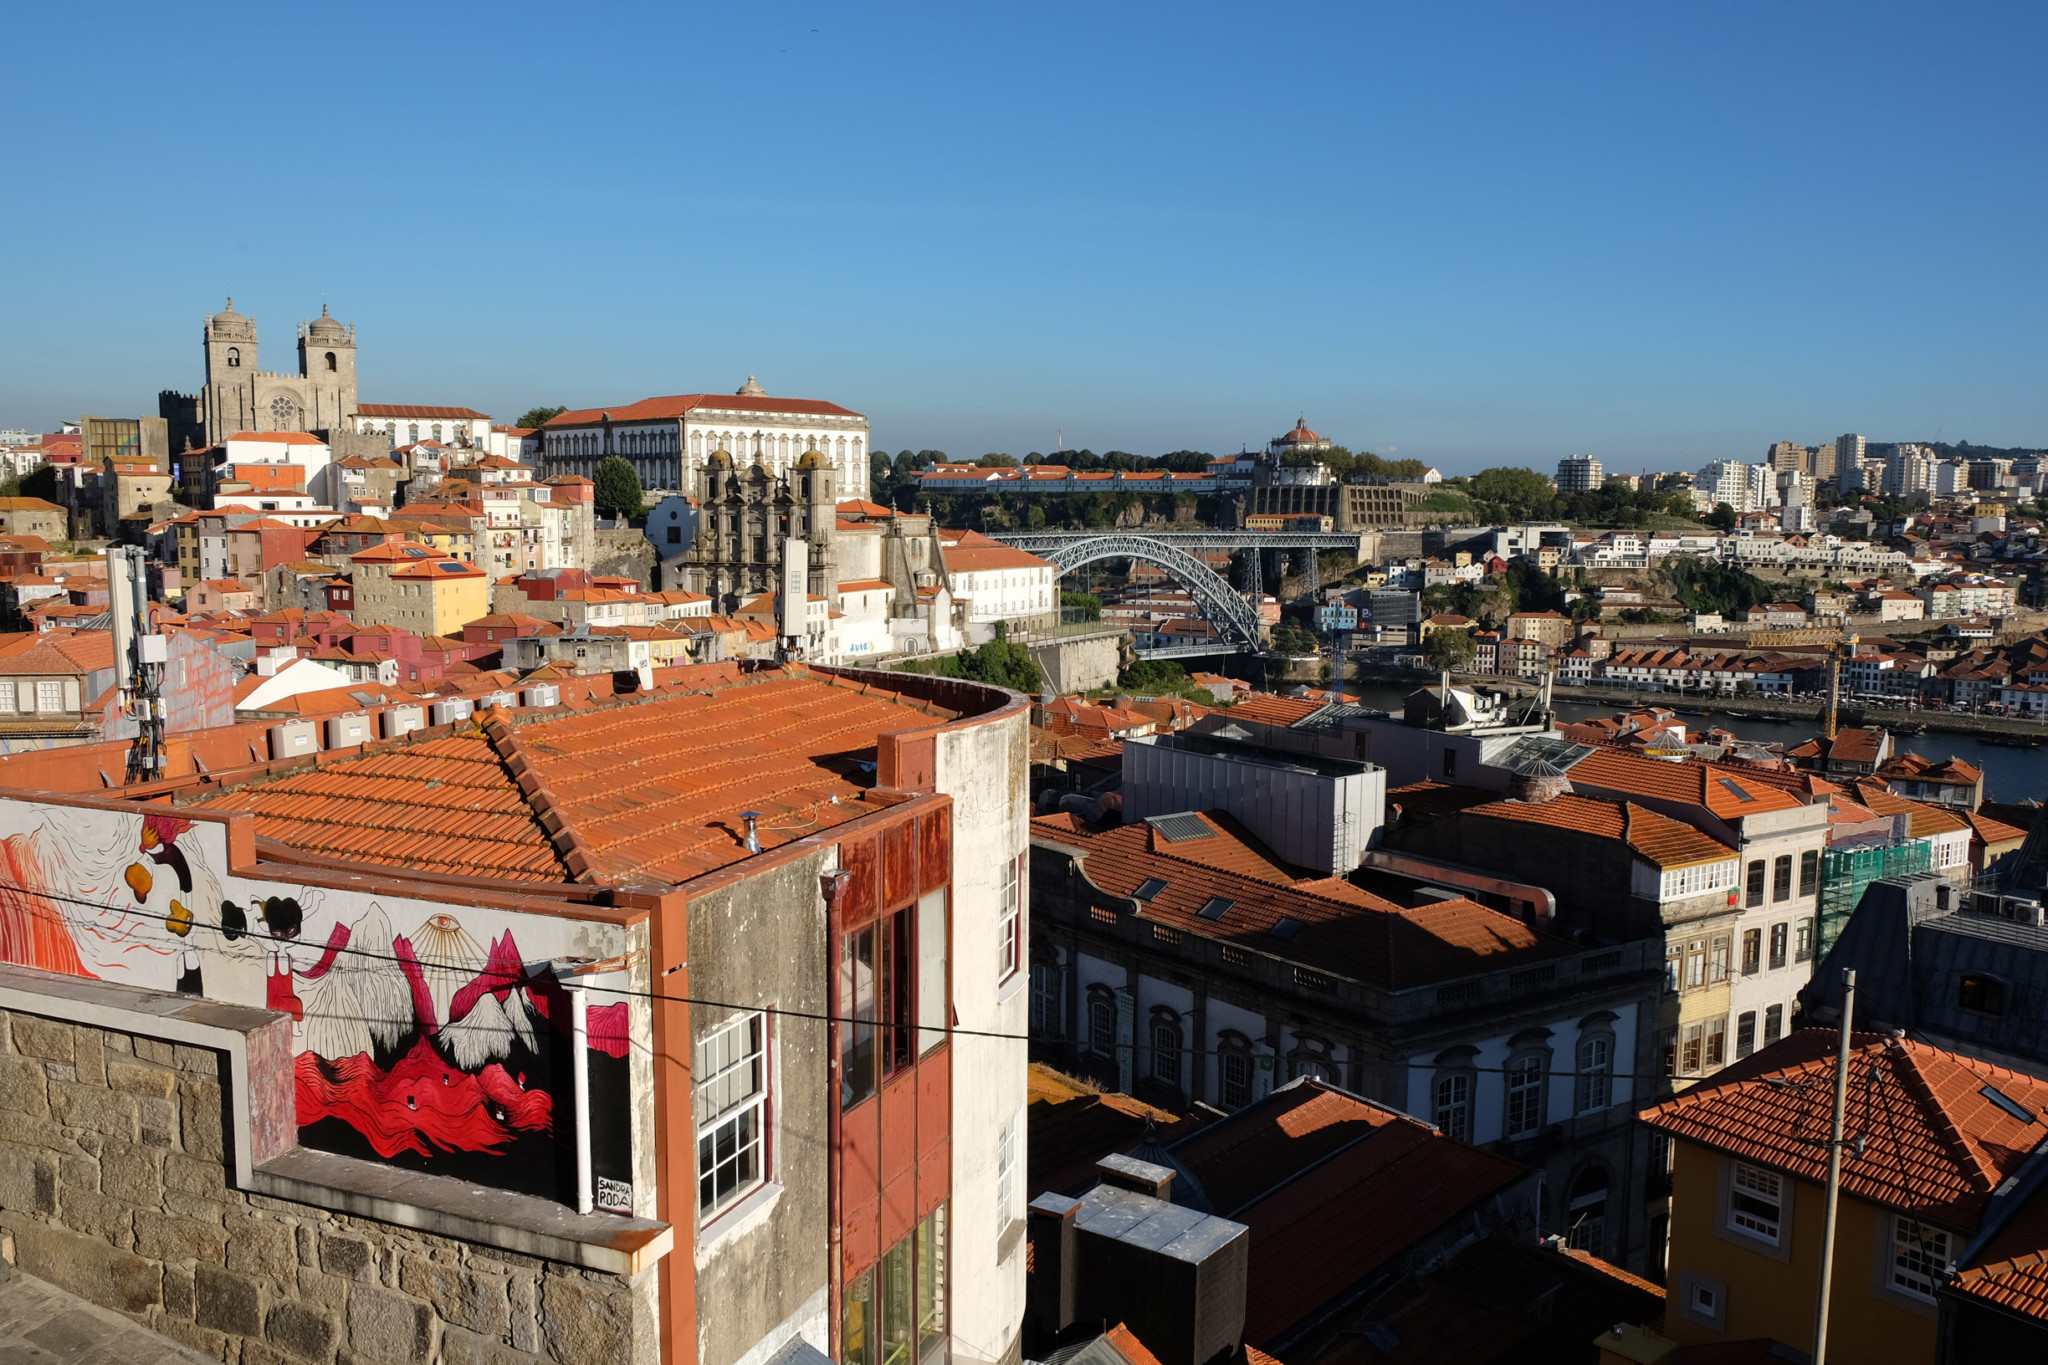 The lovely view from the Miradouro da Vitoria